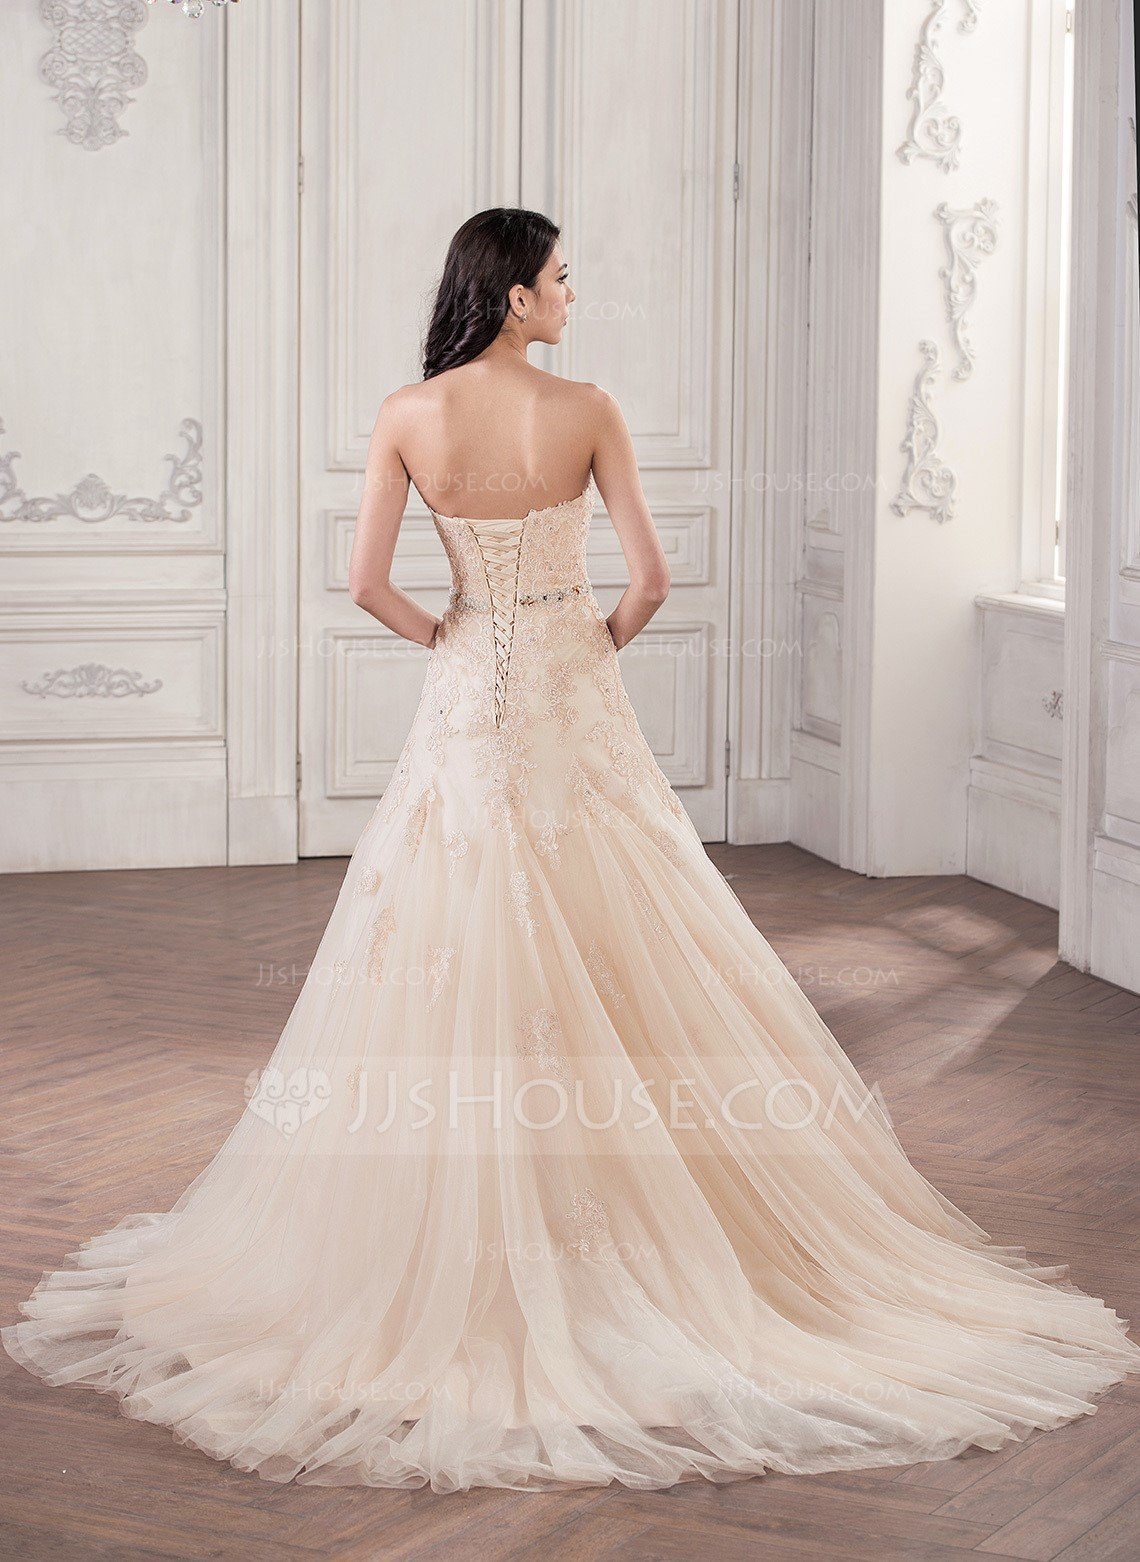 Glamour Mermaid Wedding Dresses For Your Wedding